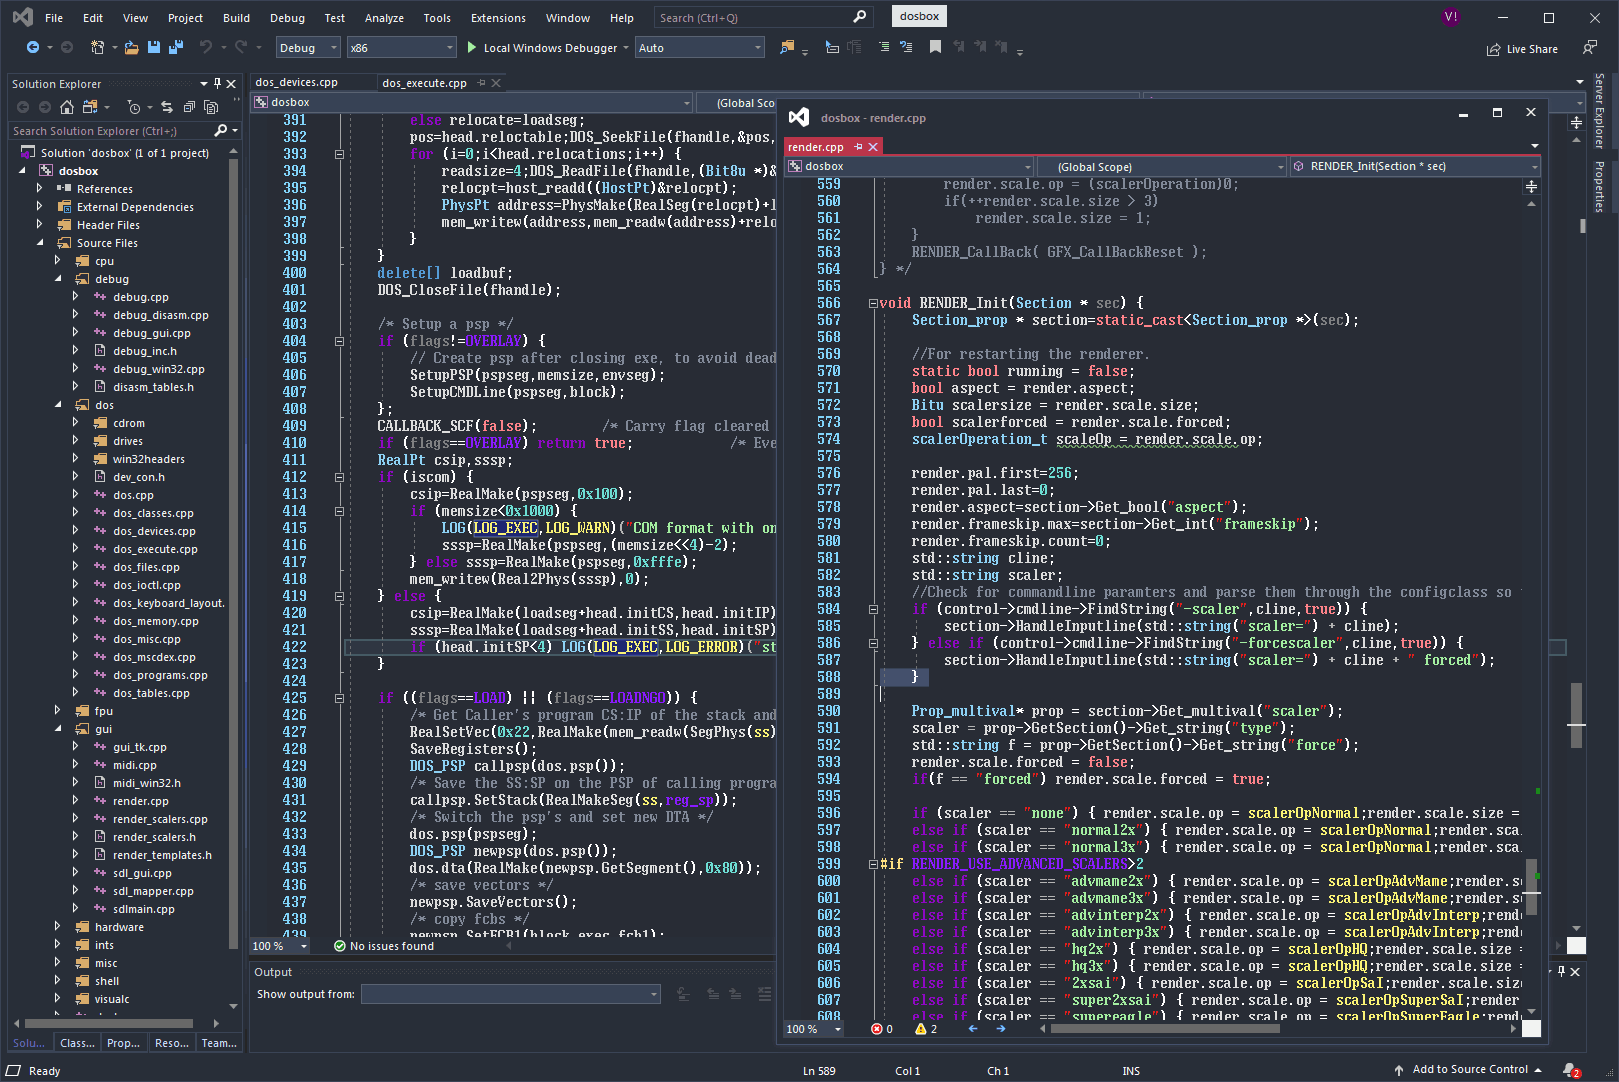 Visual Studio 2019 CE, using the ToshibaTxL1 8x16 font